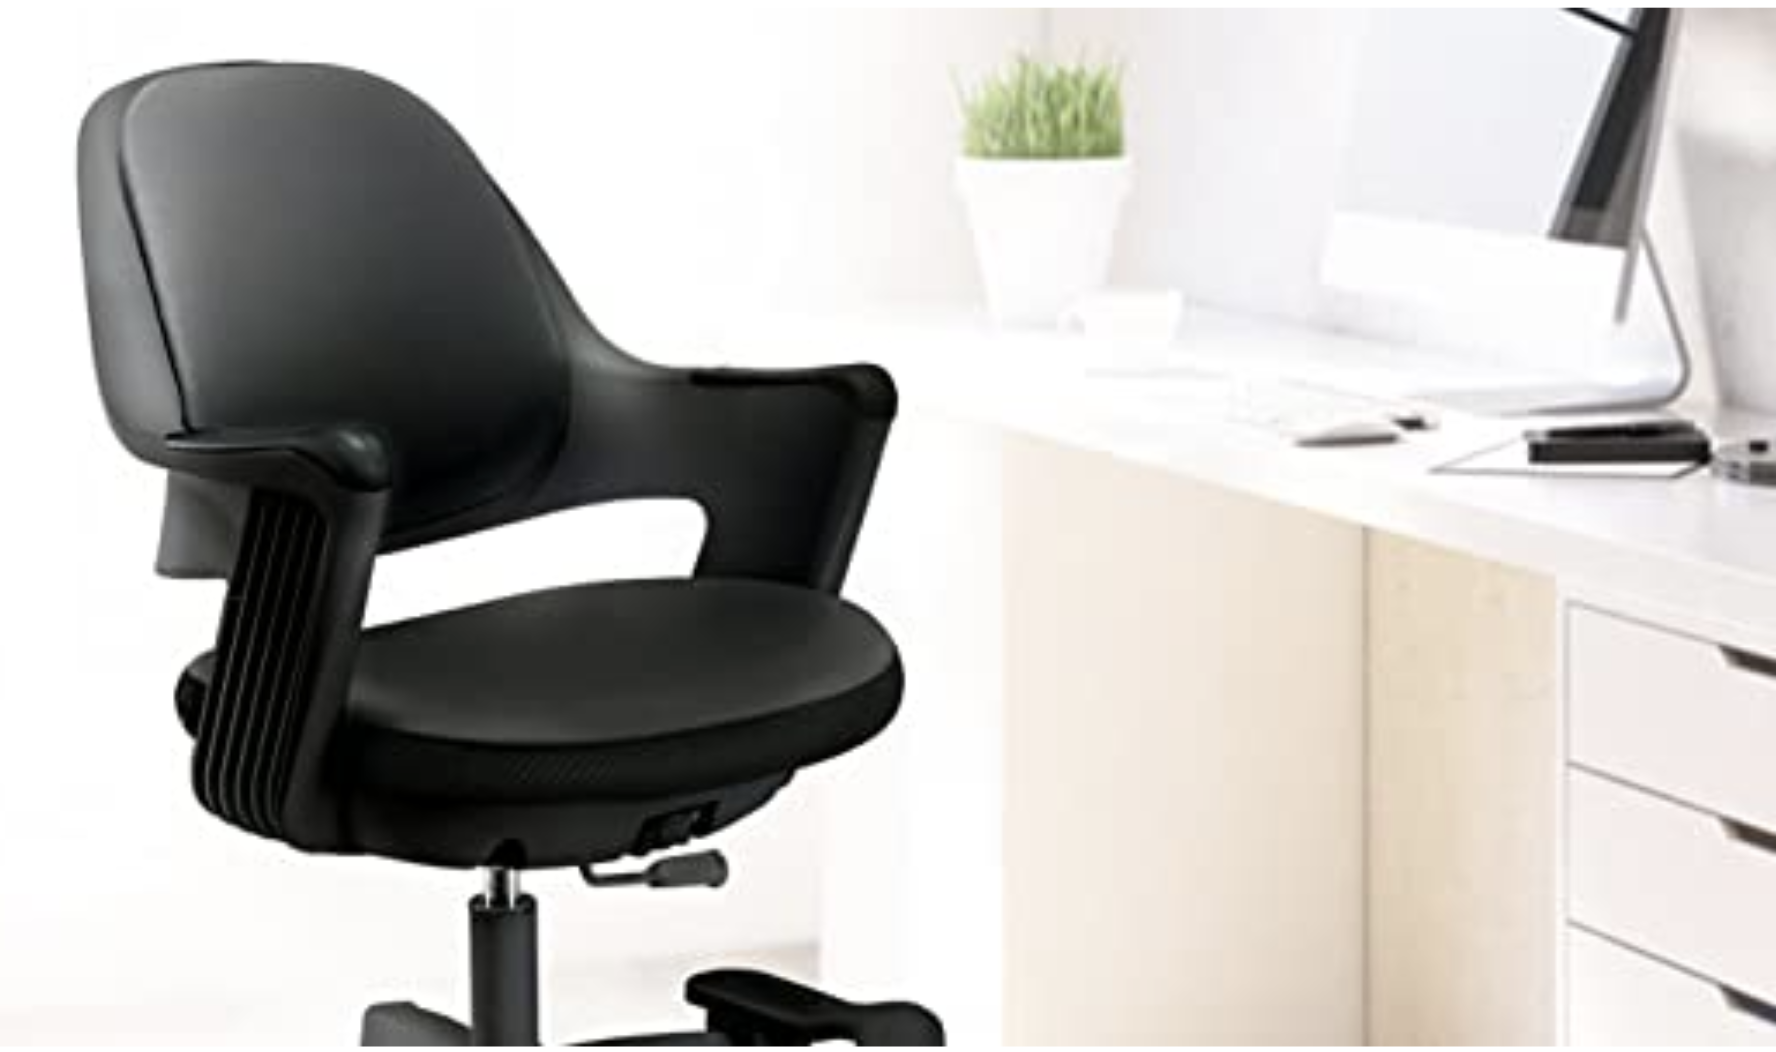 Black swivel height adjustable office chair with arm rests